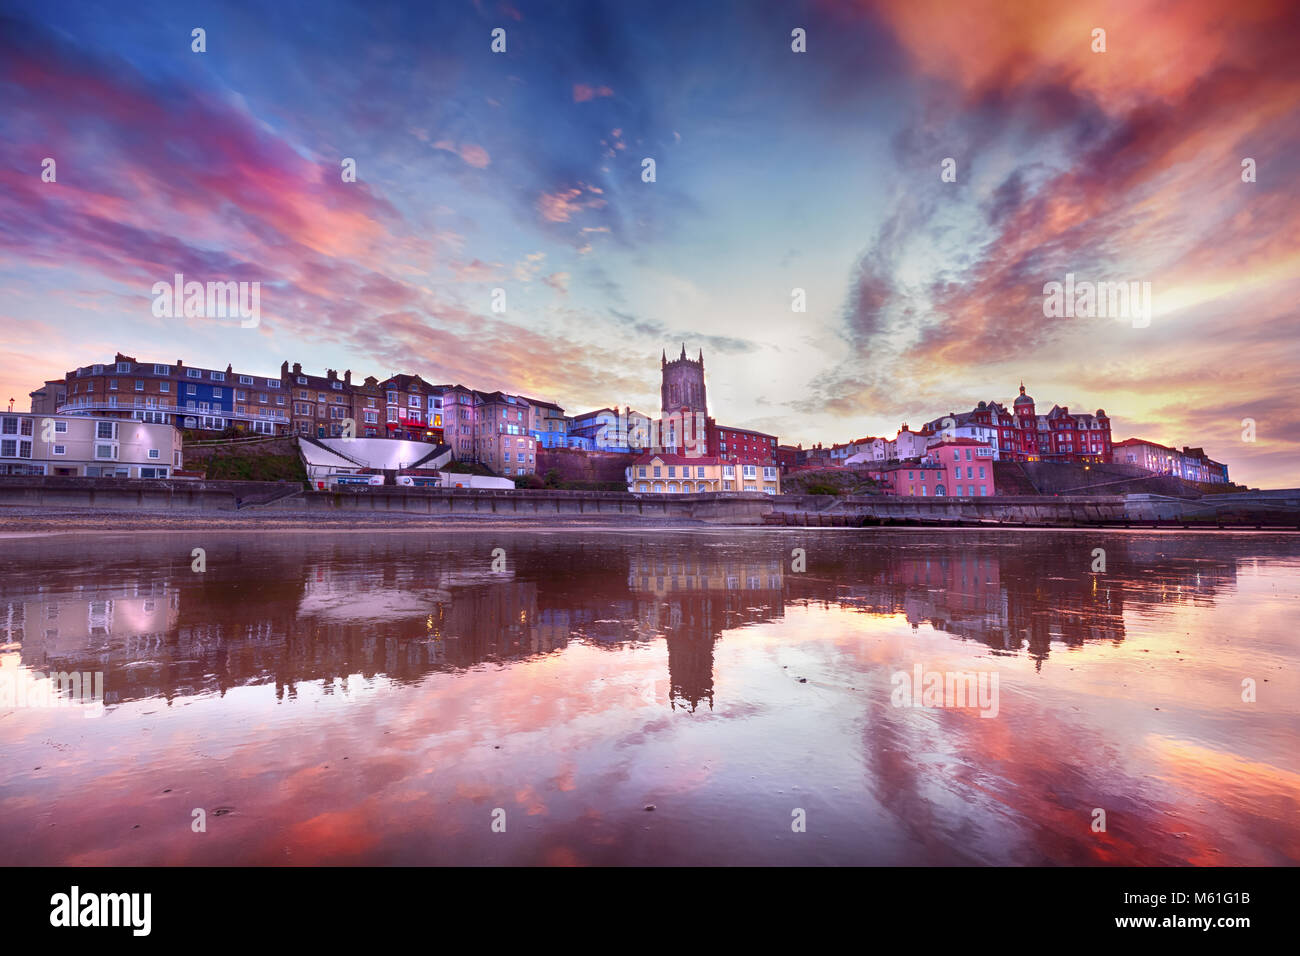 Skies ablaze in Cromer town - Fabulous looking sky and reflection surround the picturesque seaside town of Cromer. Stock Photo